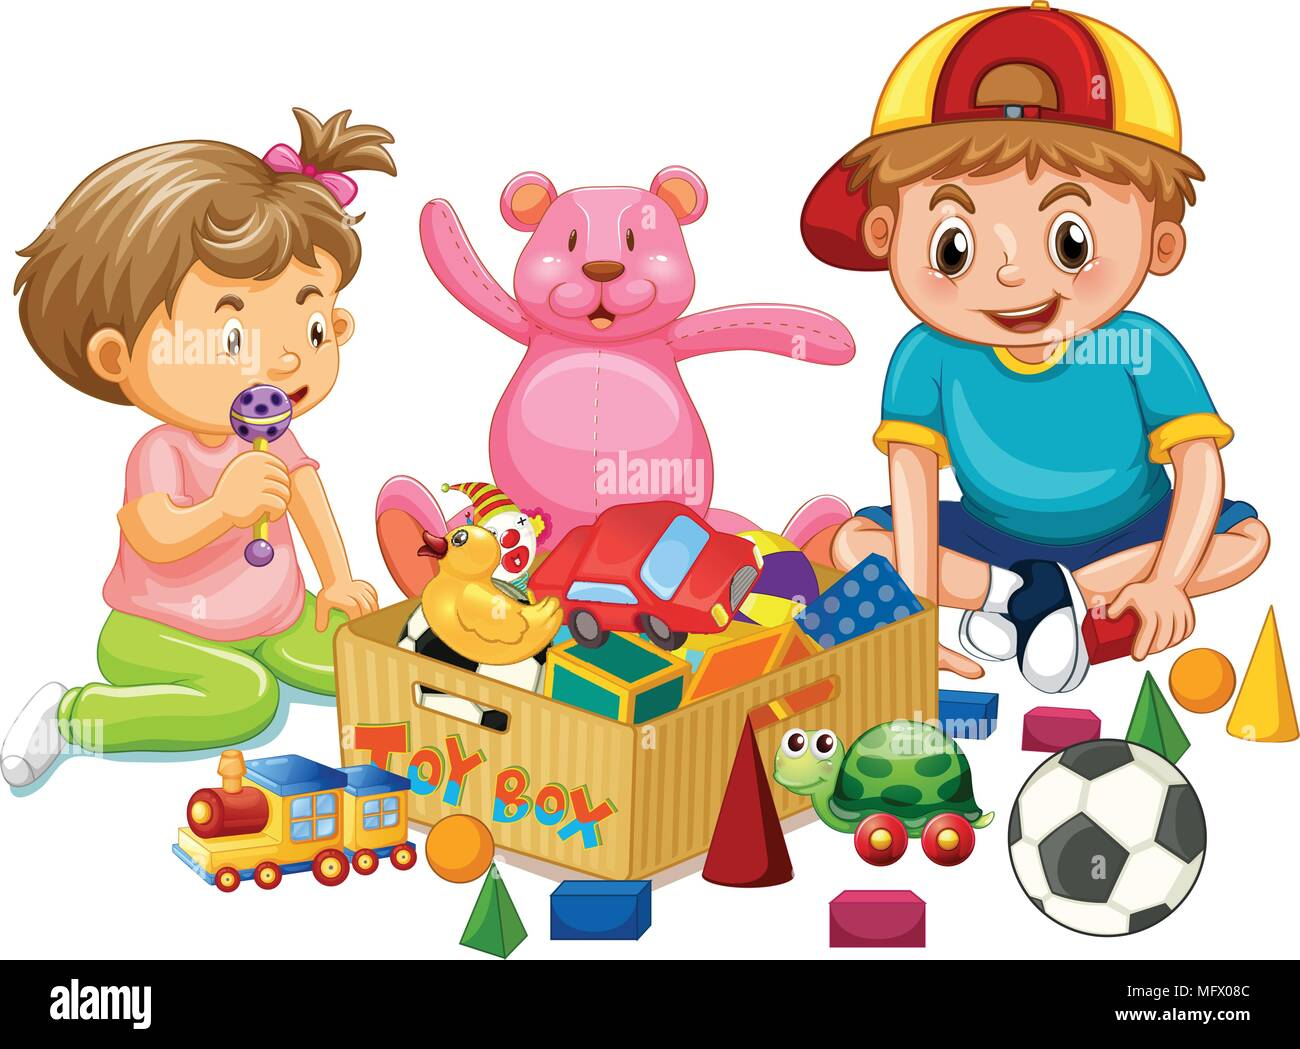 Brother and Sister Clip Art 1 - Free Clip Art